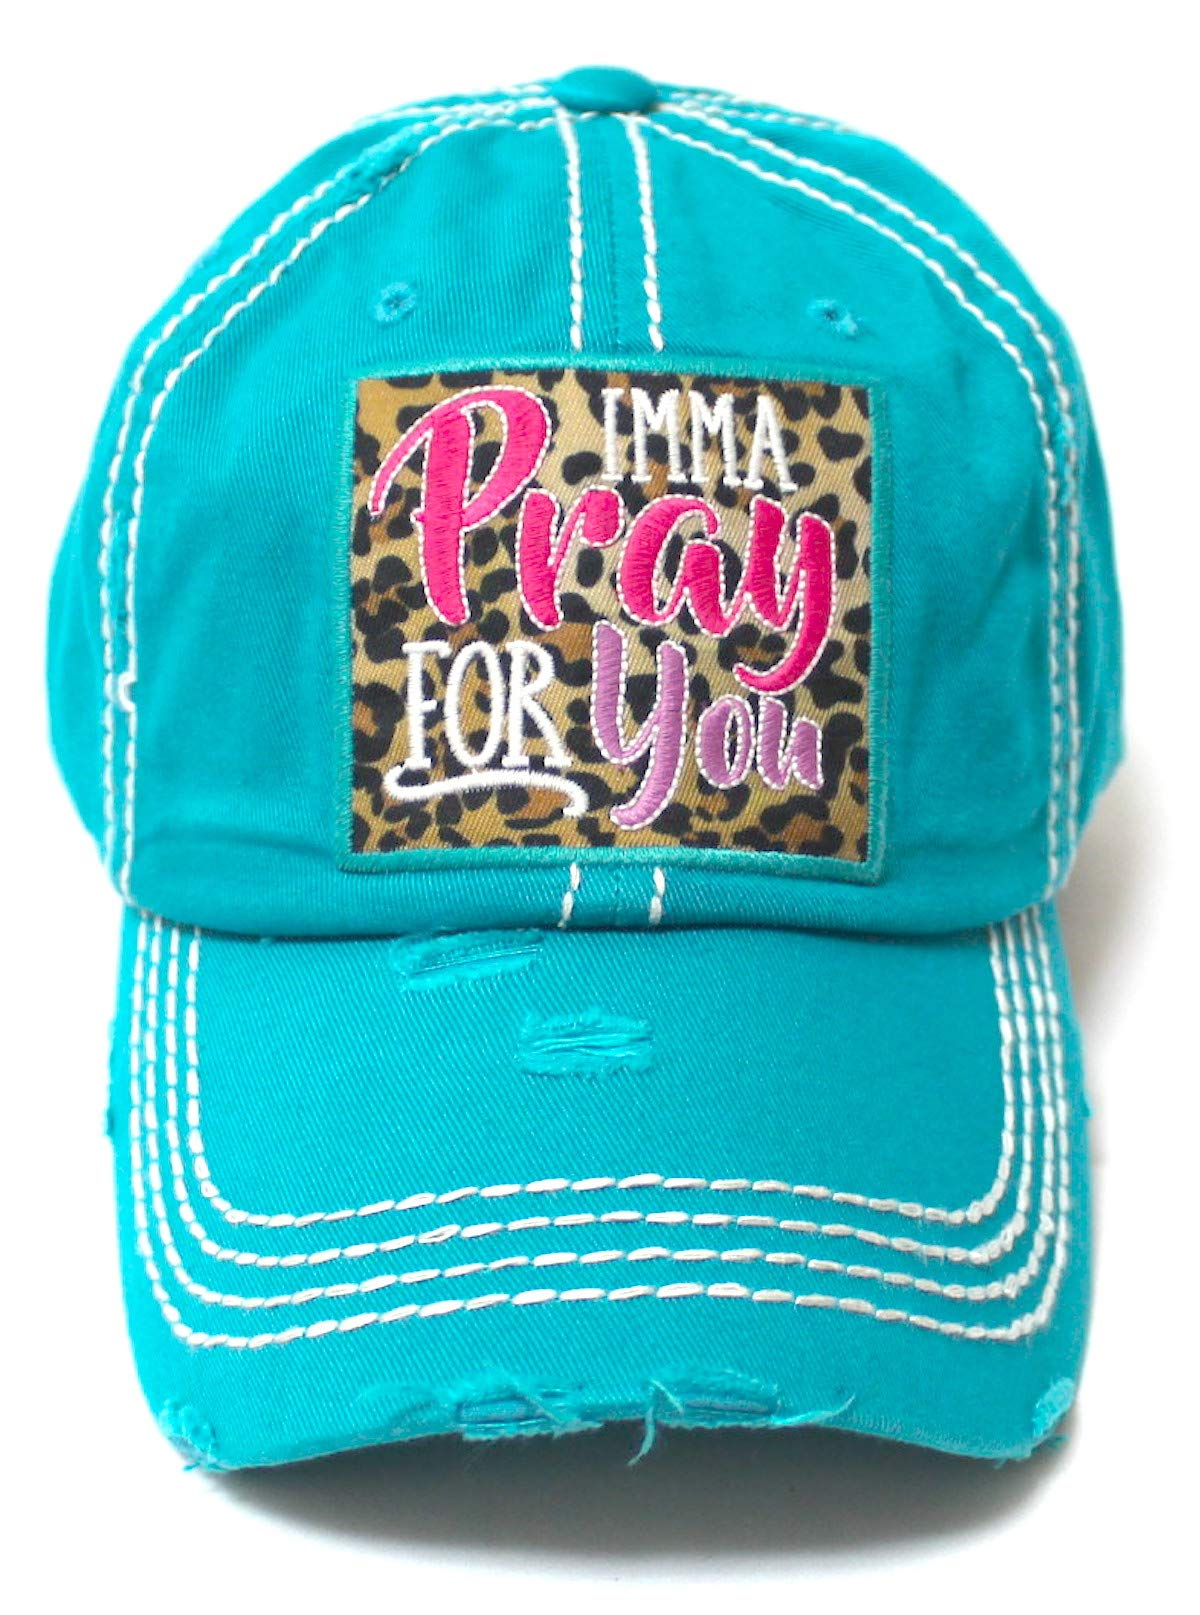 Women's Christian Themed Imma Pray for You Leopard Monogram Patch Embroidery Baseball Hat, Vintage Turquoise - Caps 'N Vintage